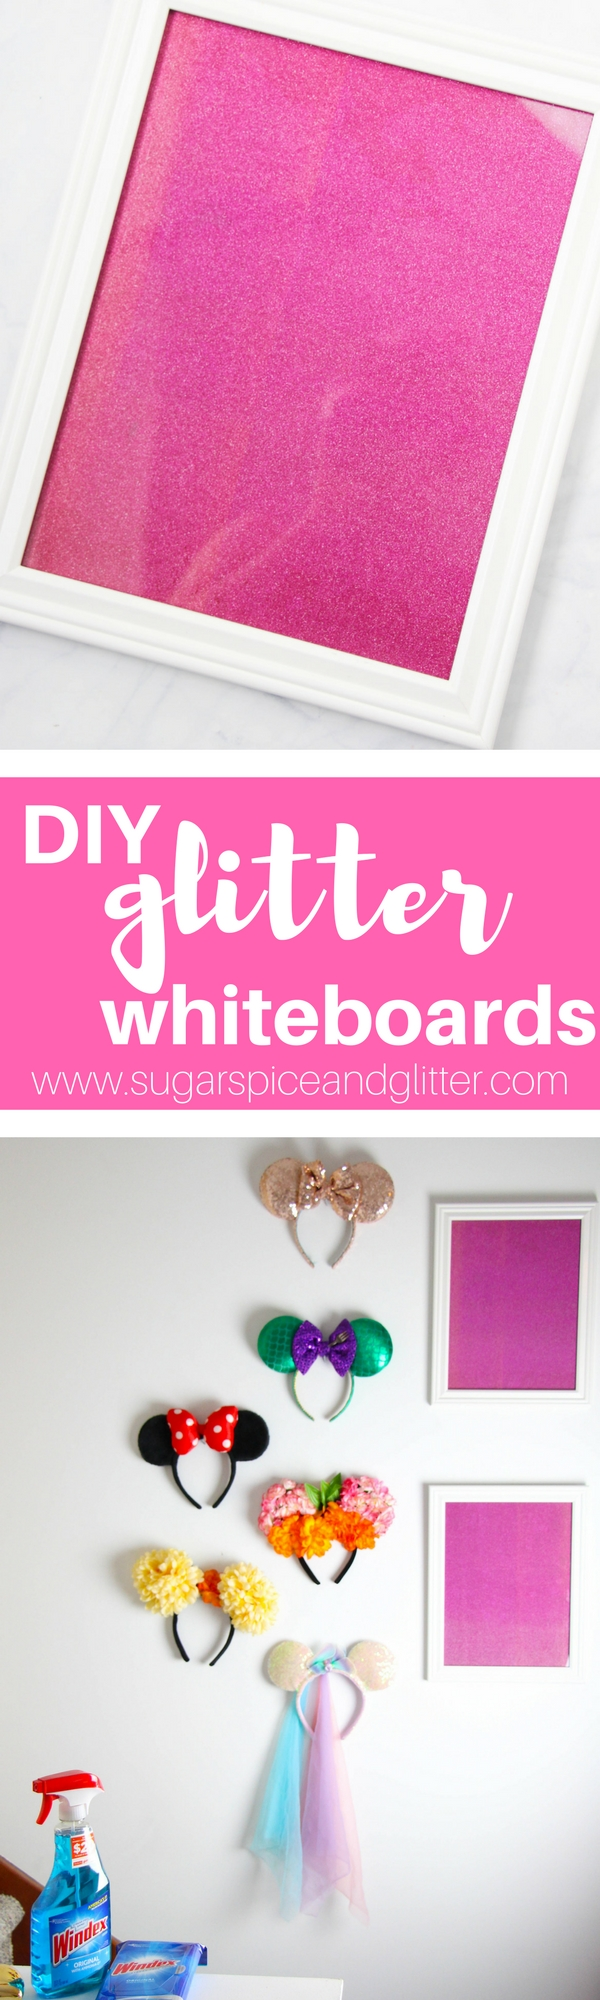 DIY Glitter Boards to add some sparkle to your office. A fun organization DIY for kids' homework and chore lists, too